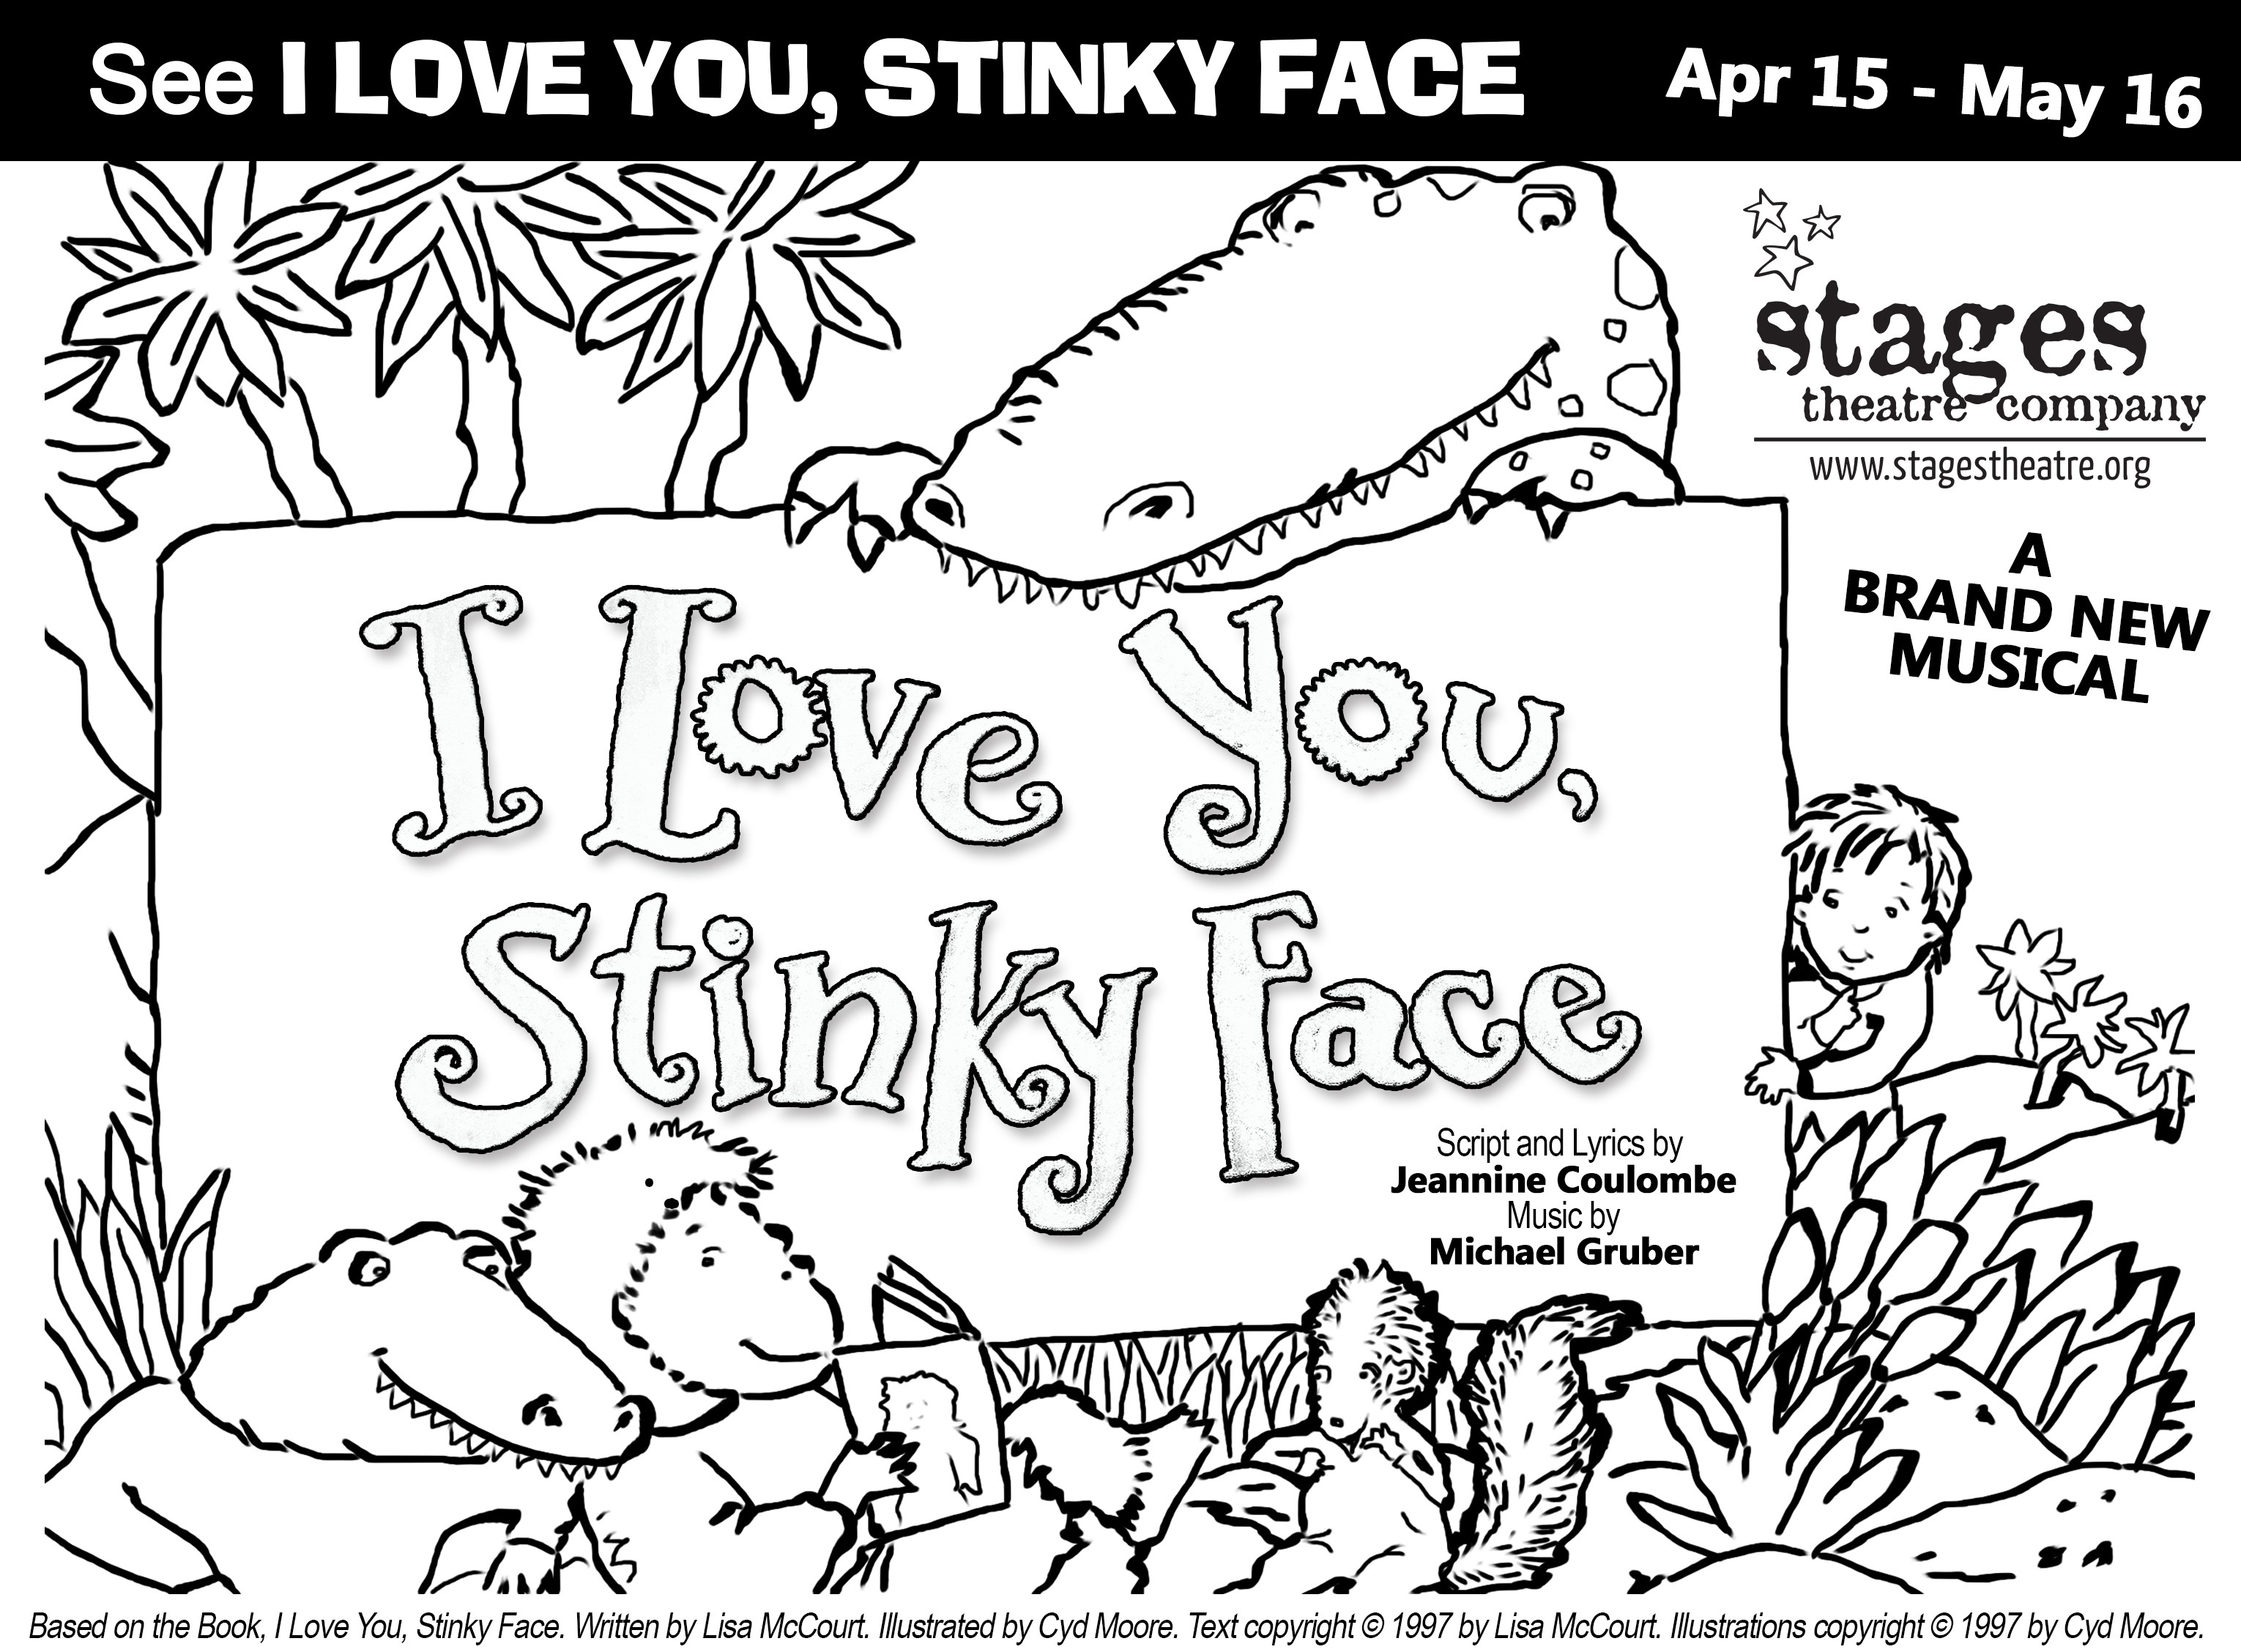 3060x2256 I Love You Stinky Face Coloring Pages Best Of Stages Theatre Pany